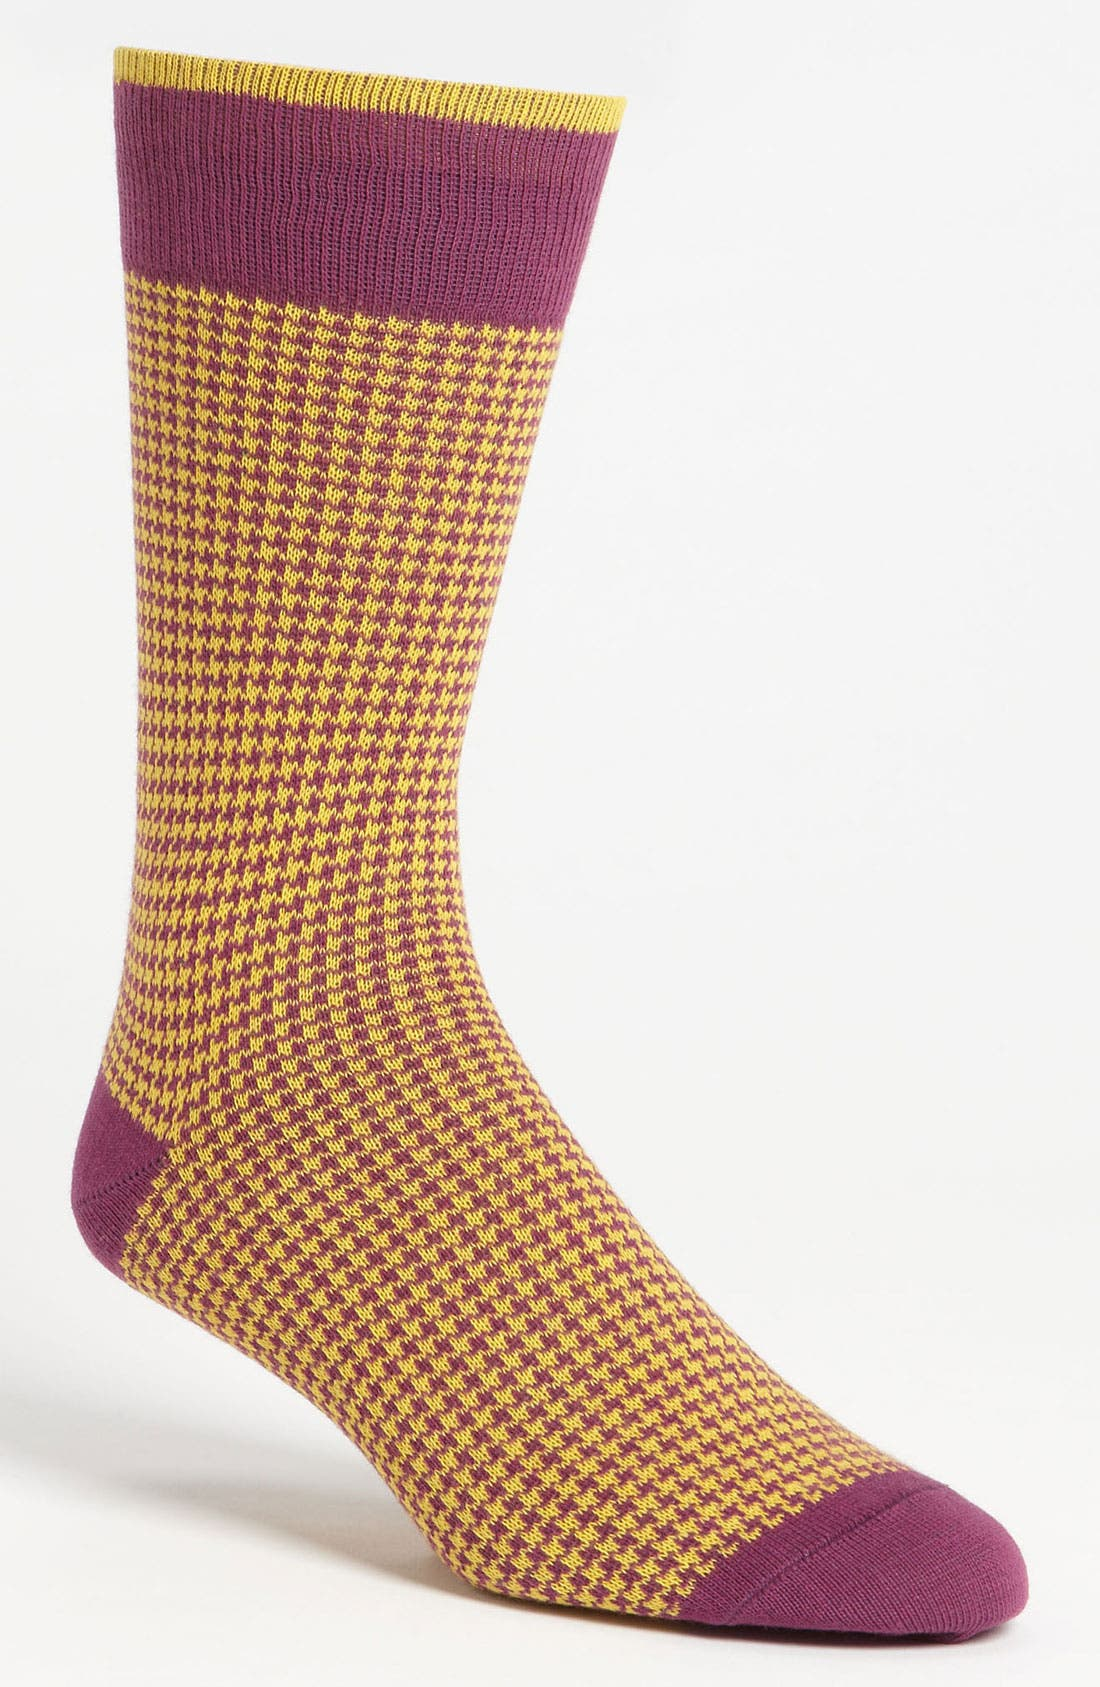 Main Image - Lorenzo Uomo Houndstooth Check Socks